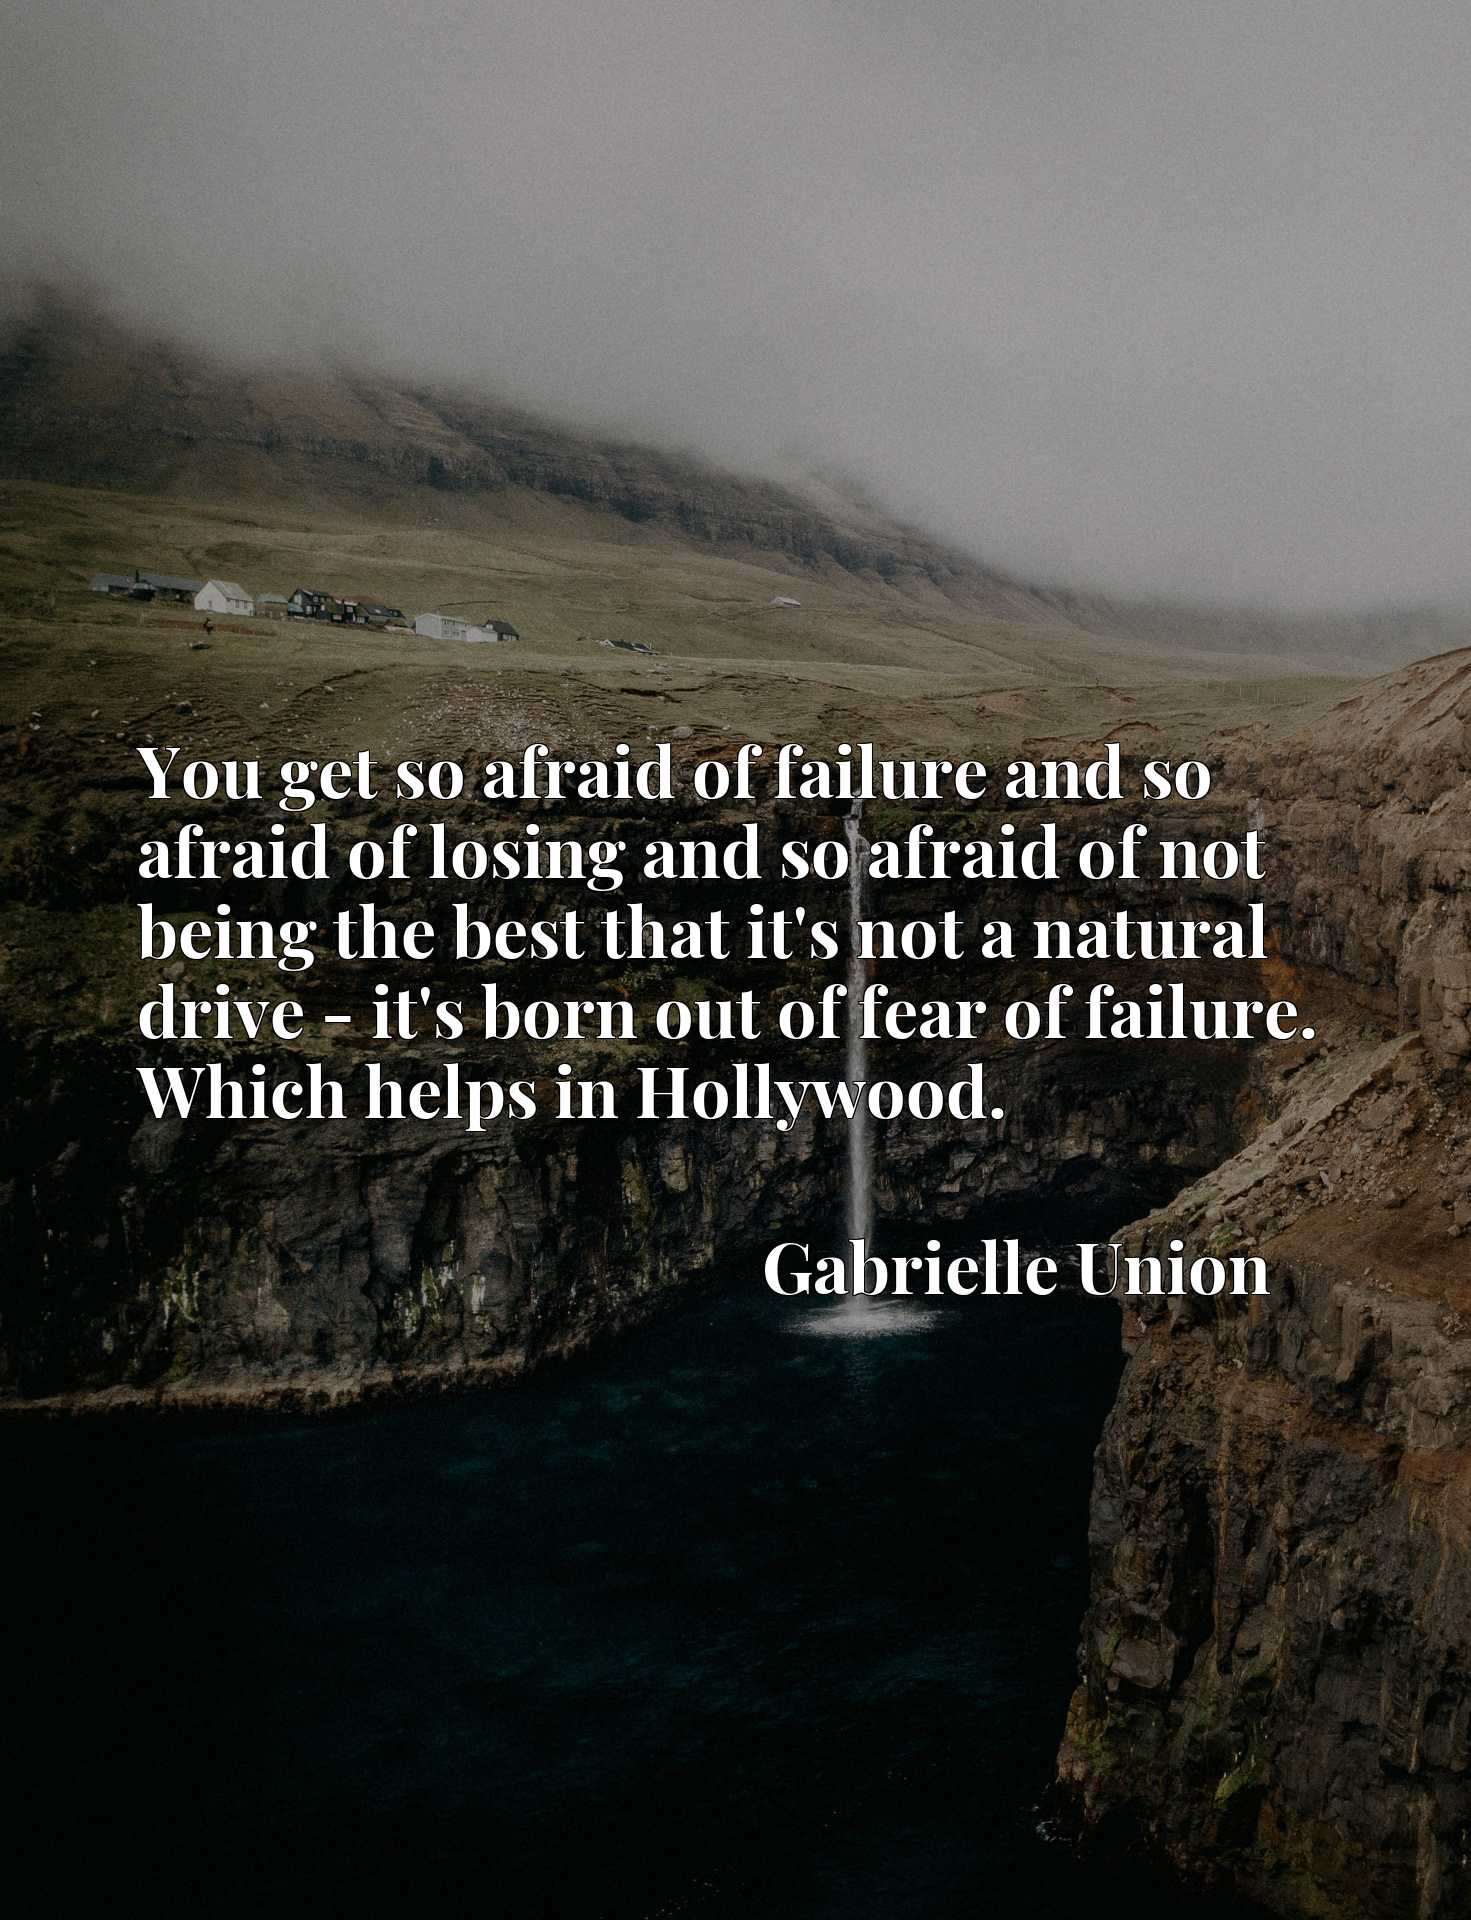 You get so afraid of failure and so afraid of losing and so afraid of not being the best that it's not a natural drive - it's born out of fear of failure. Which helps in Hollywood.